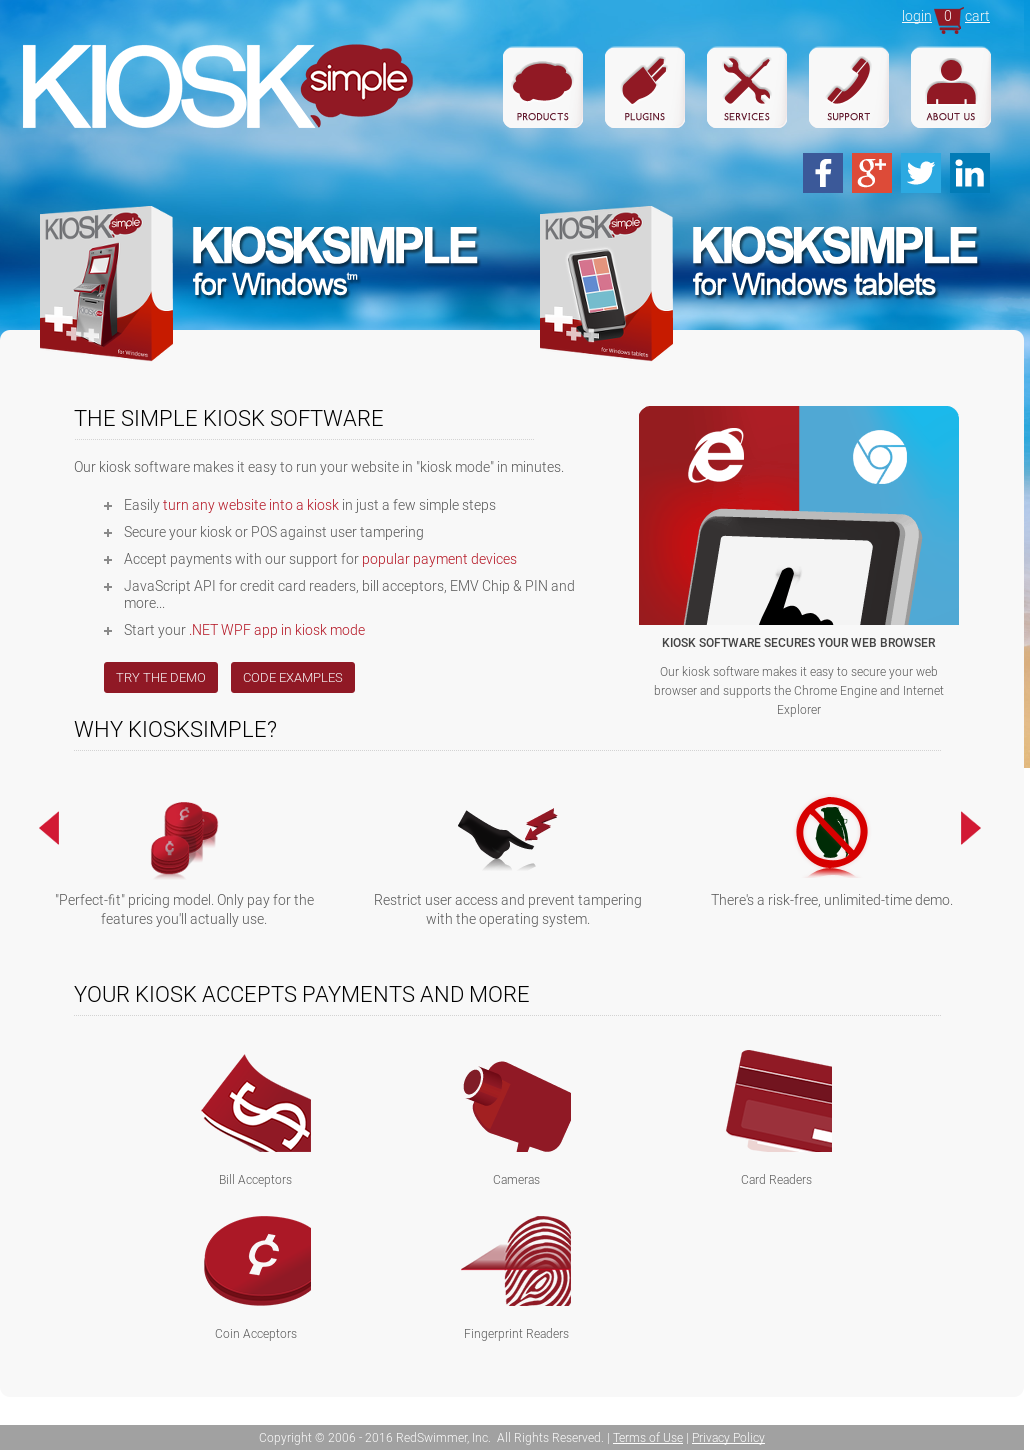 Kiosksimple Competitors, Revenue and Employees - Owler